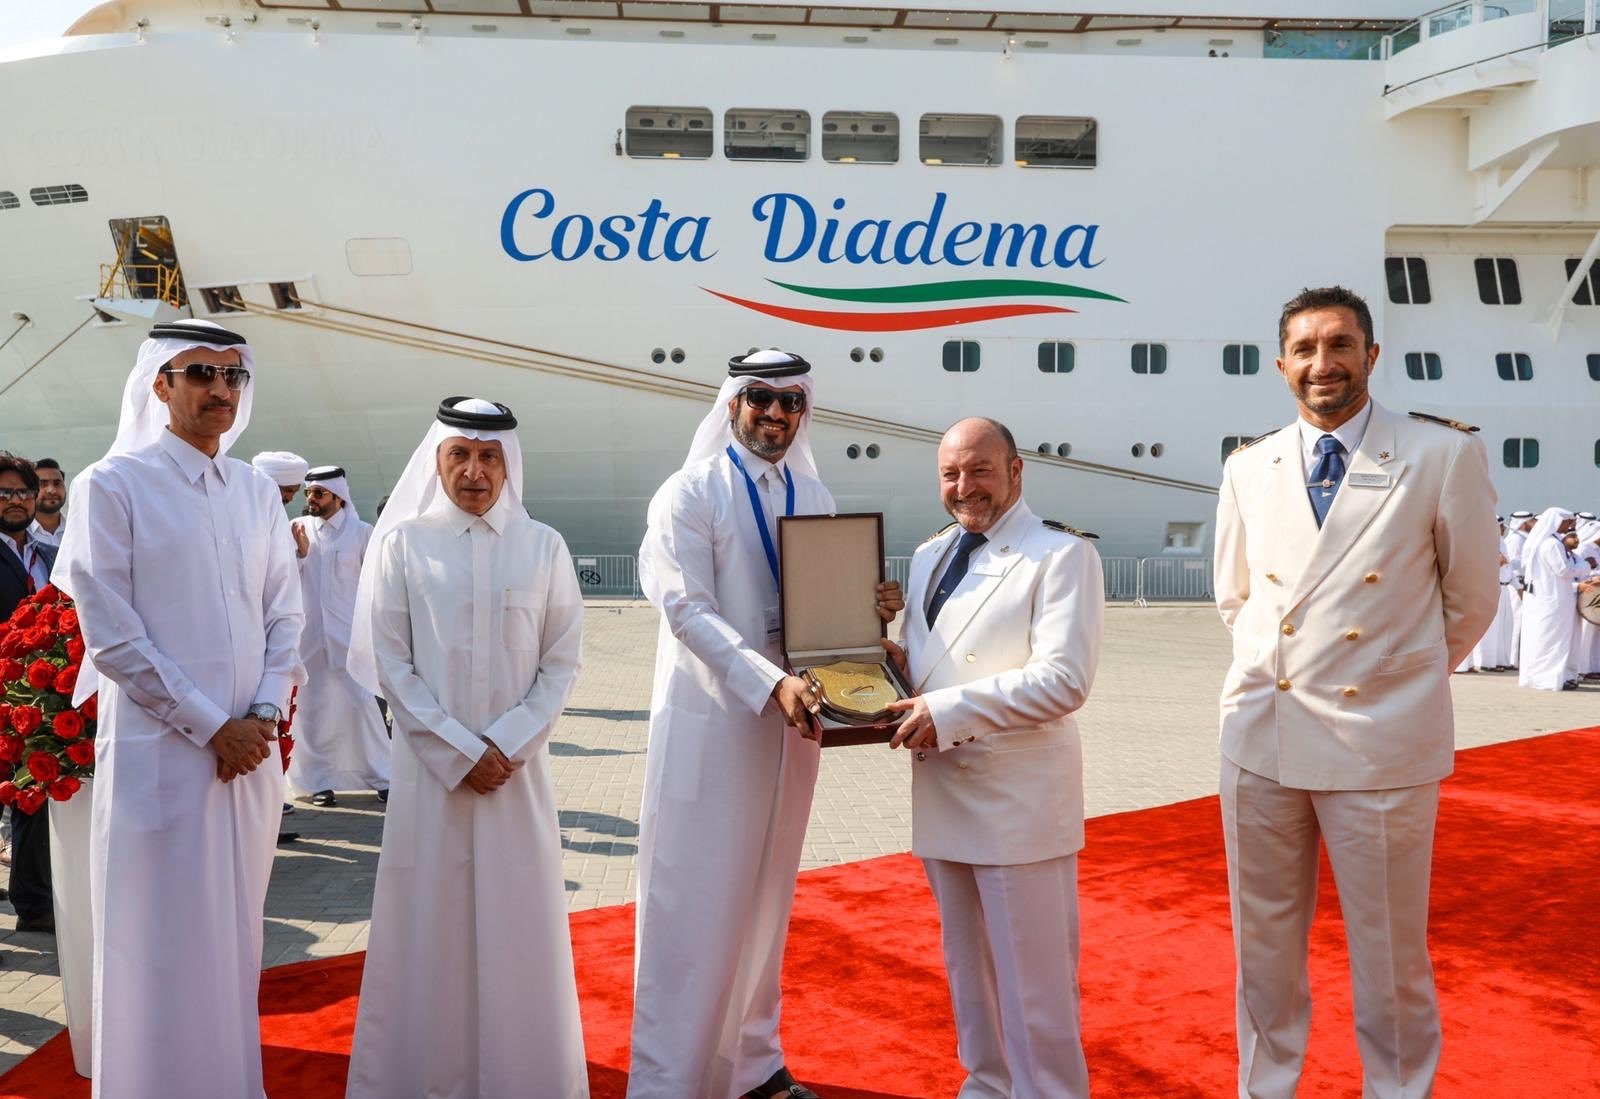 Doha Port welcomed Costa Diadema, on her maiden call to Qatar